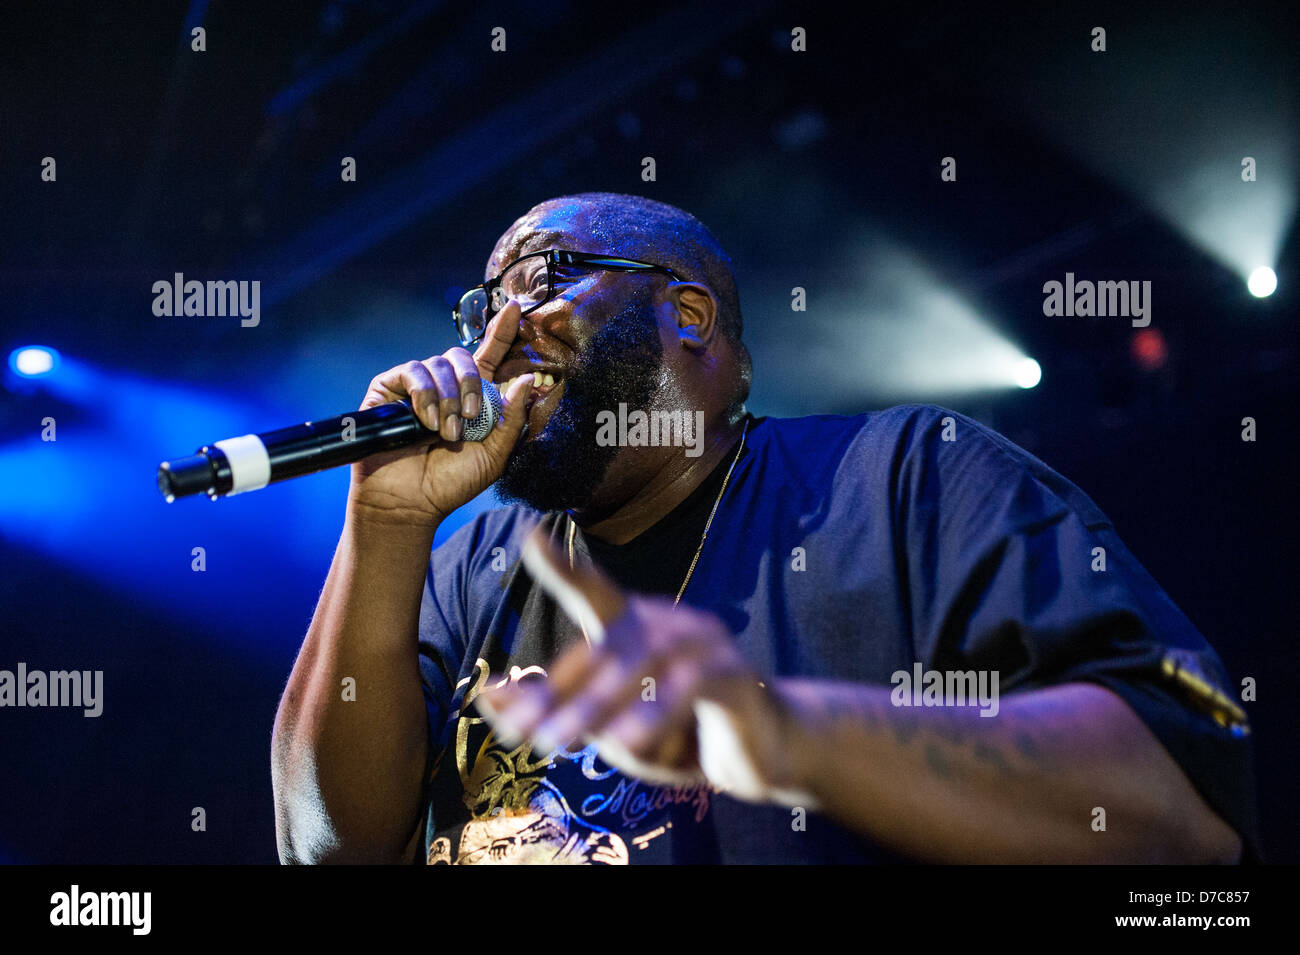 Hip-hop artist Killer Mike performing on May 1, 2013 at Park West in Chicago. Credit: Max Herman/Alamy Stock Photo